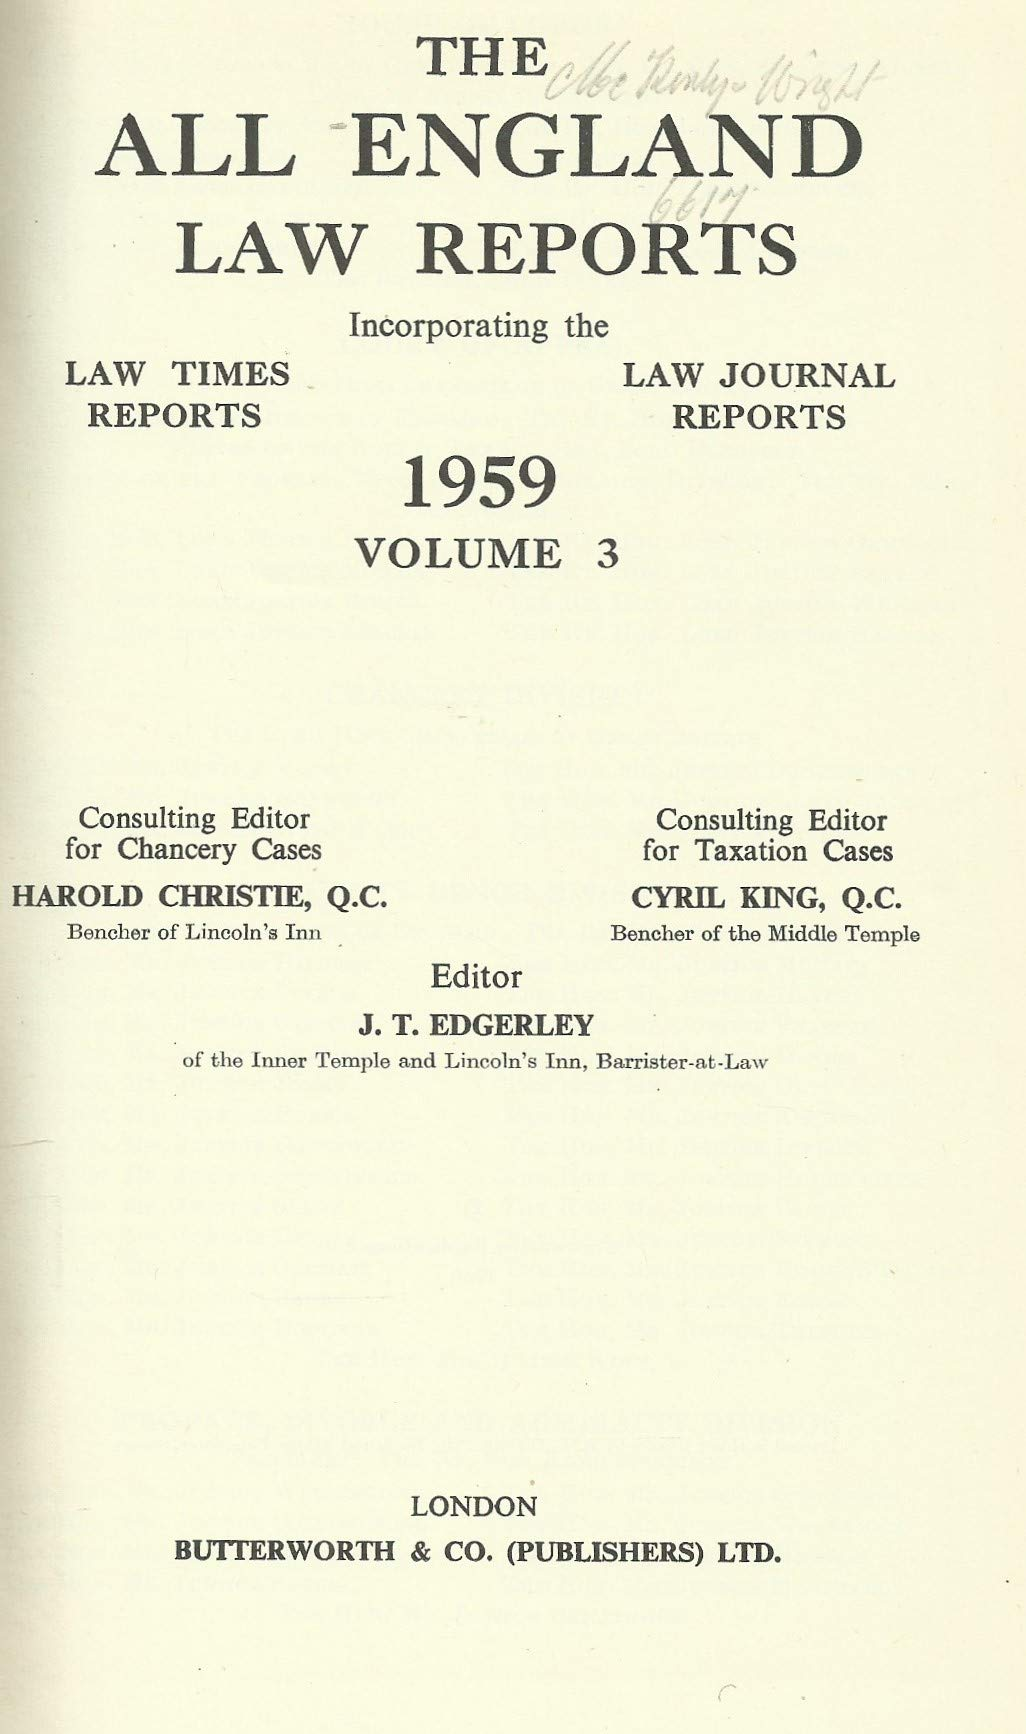 THE ALL ENGLAND LAW REPORTS, 1959: VOLUME 3.